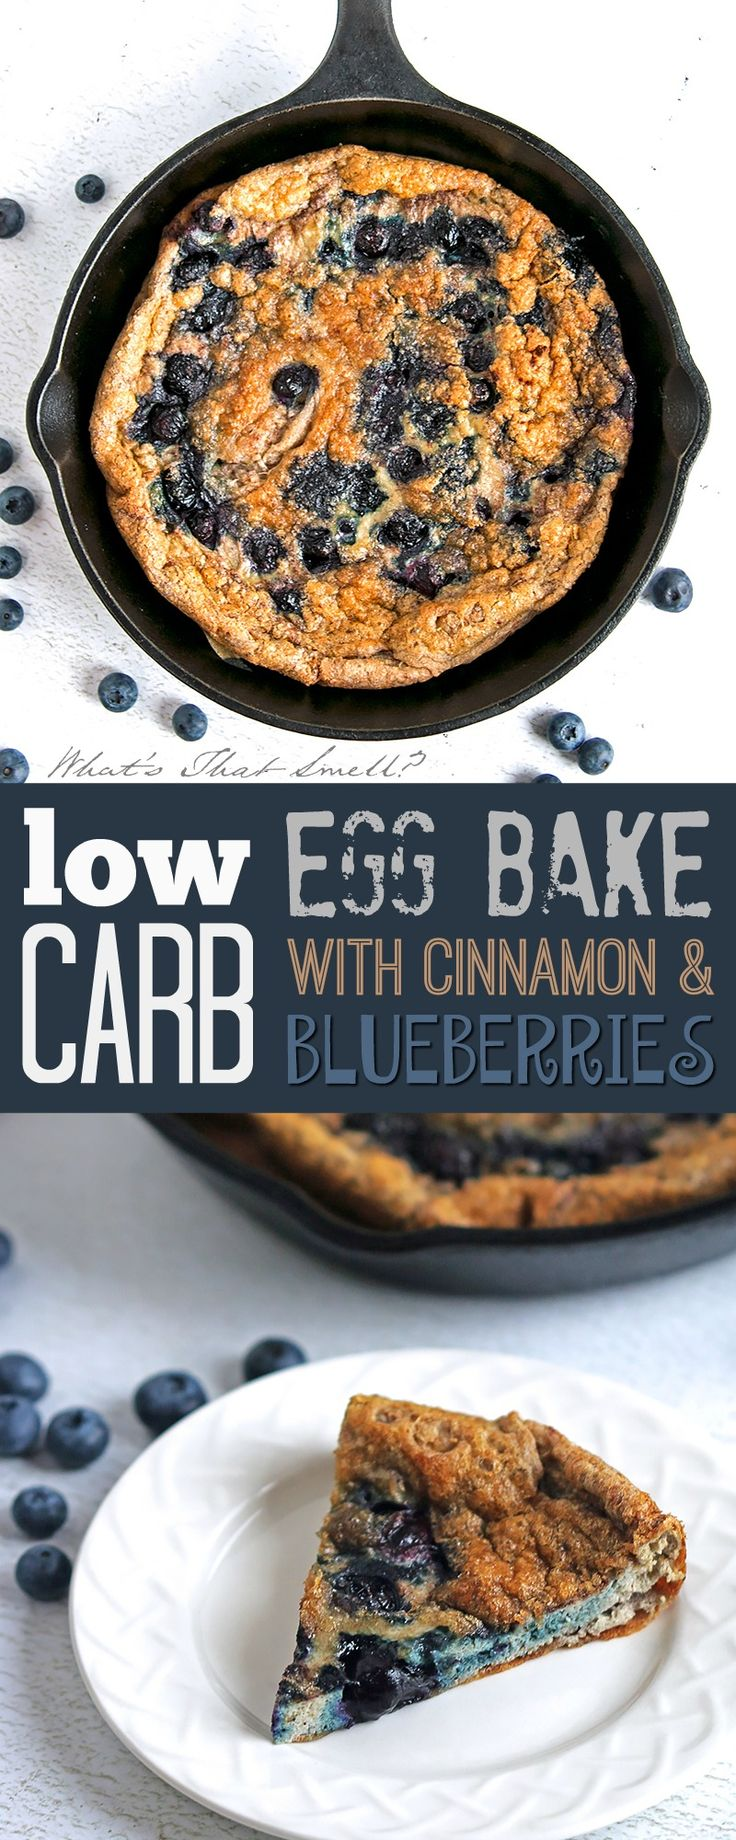 Low Carb Egg Bake with Blueberries and Cinnamon - Gluten-free, paleo, LCHF this…